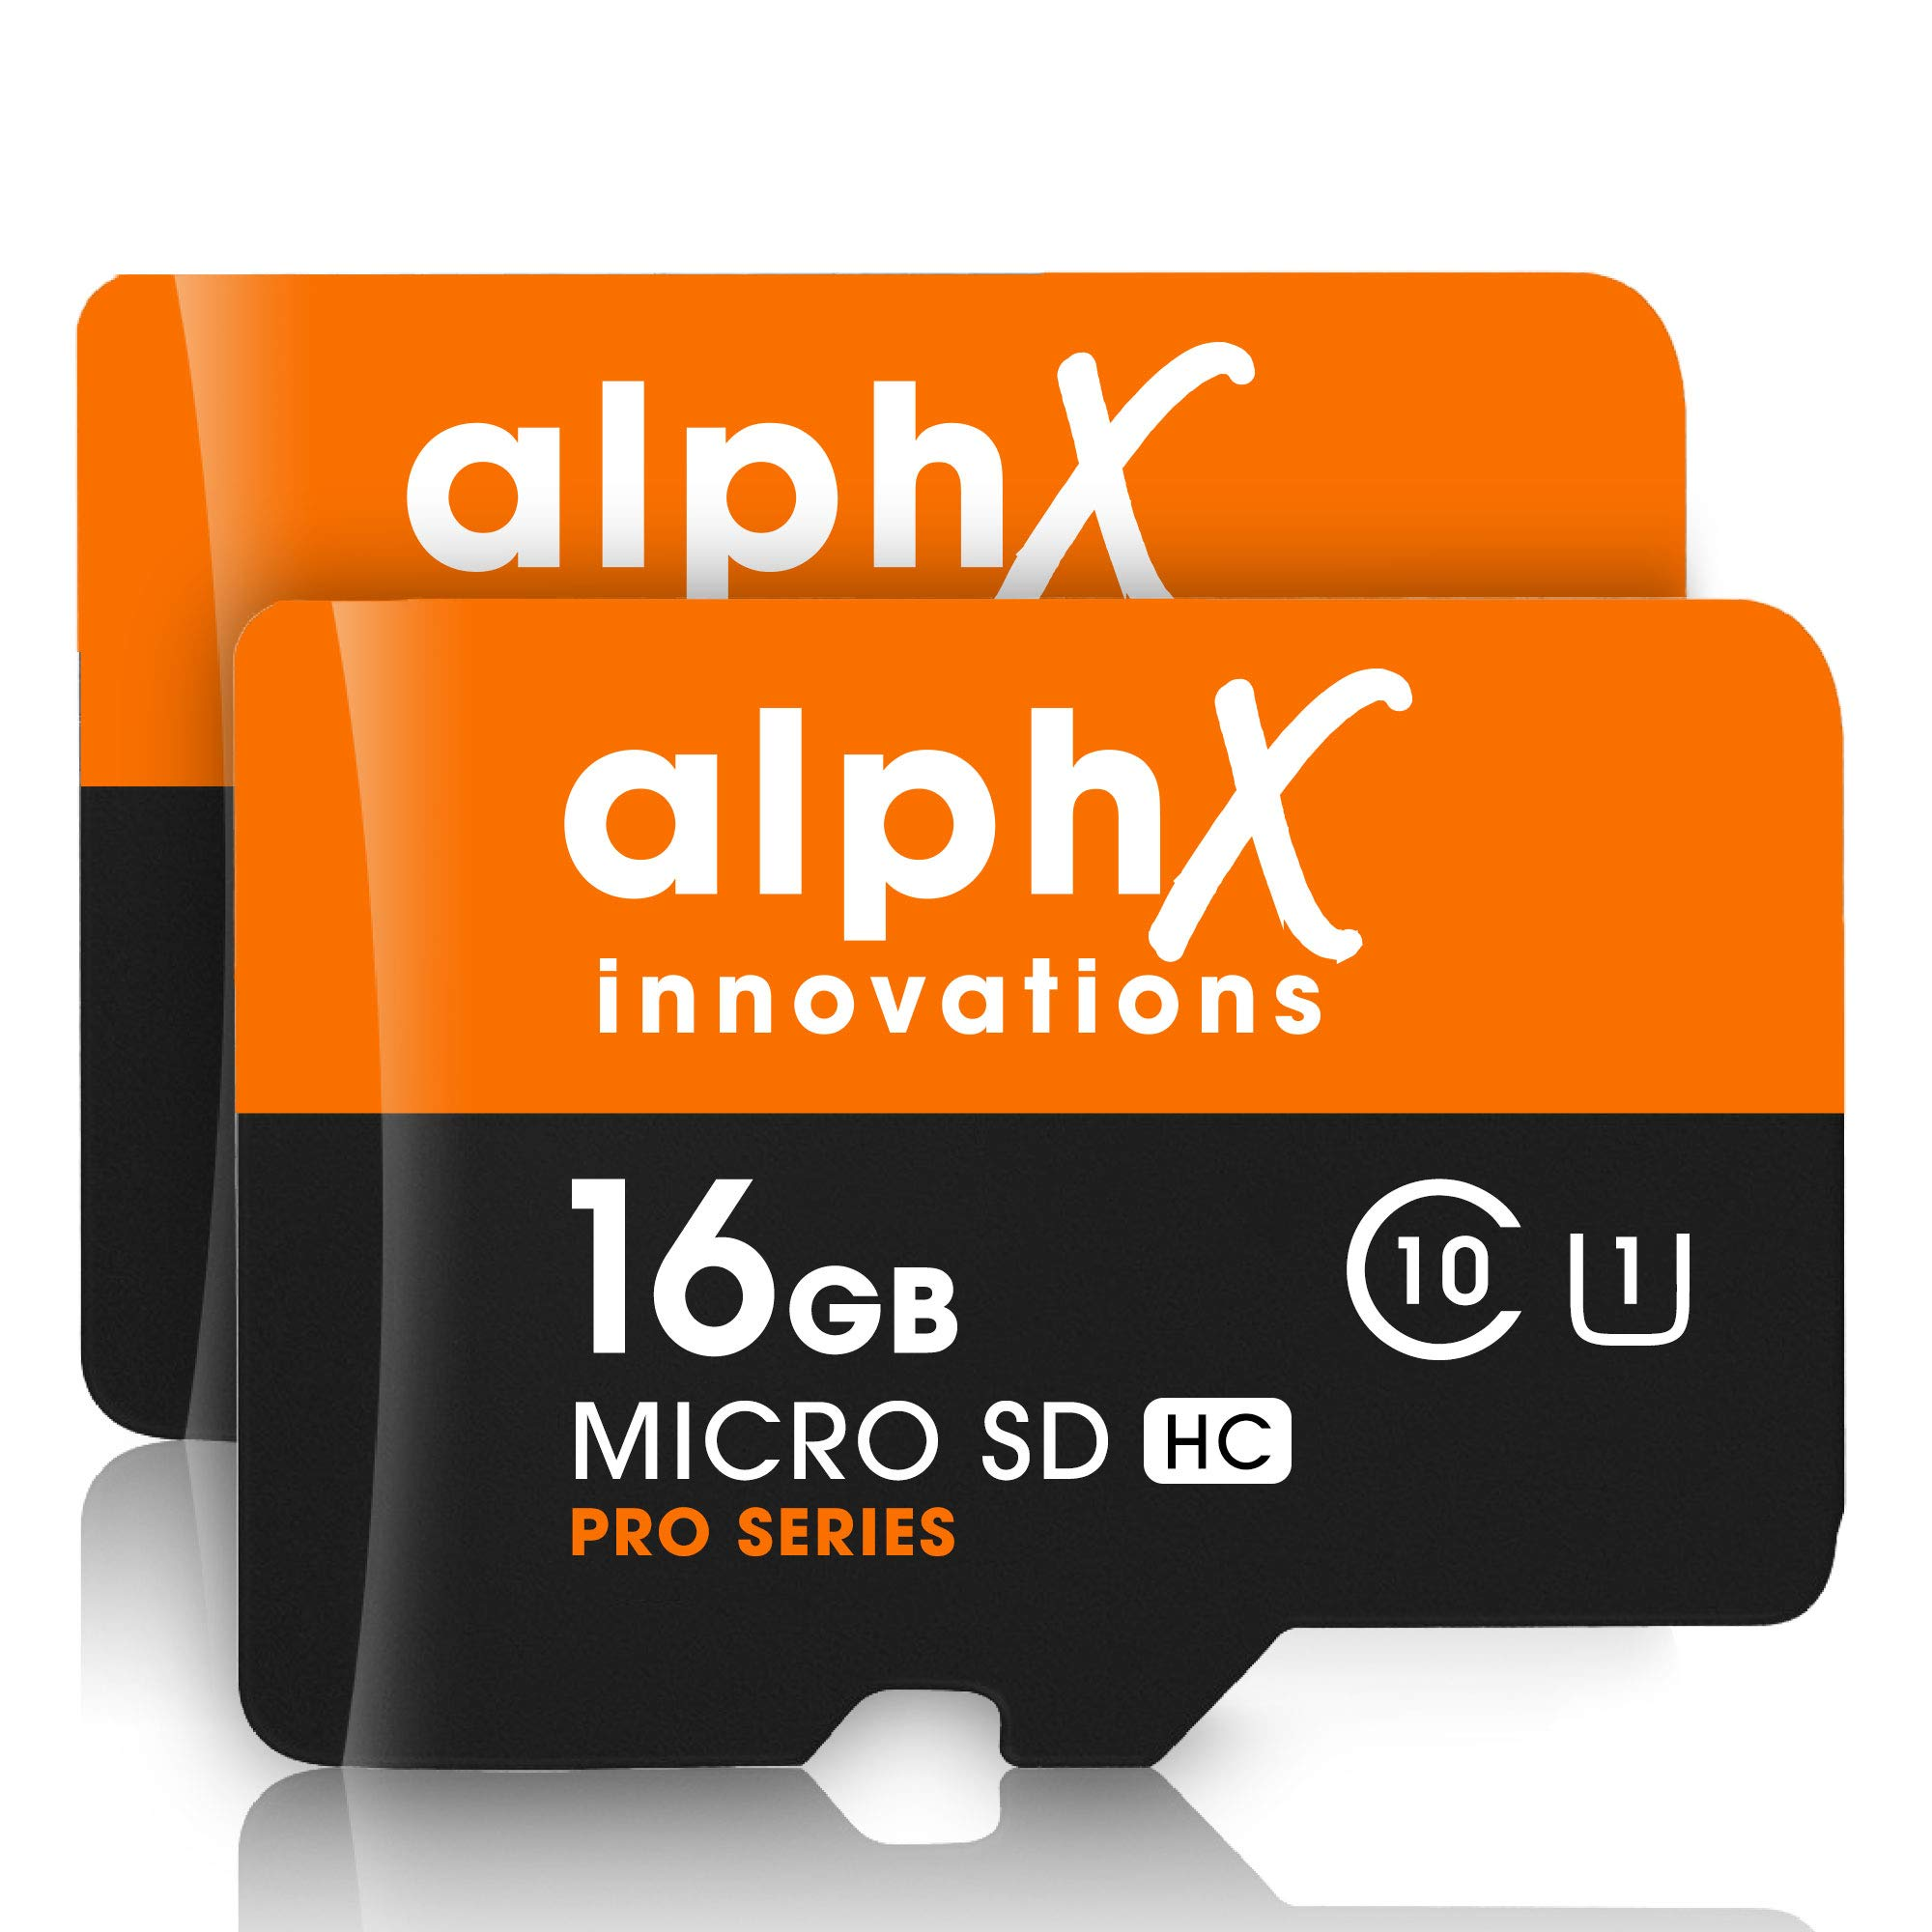 4 Piece Bundle - AlphX 16gb [2 pack] Micro SD High Speed Class 10 Memory Cards for Samsung Galaxy S9, S9+, S8, Note 8, S7, S5, S4 with Bonus Adapter and Sandisk Micro SD Card Reader